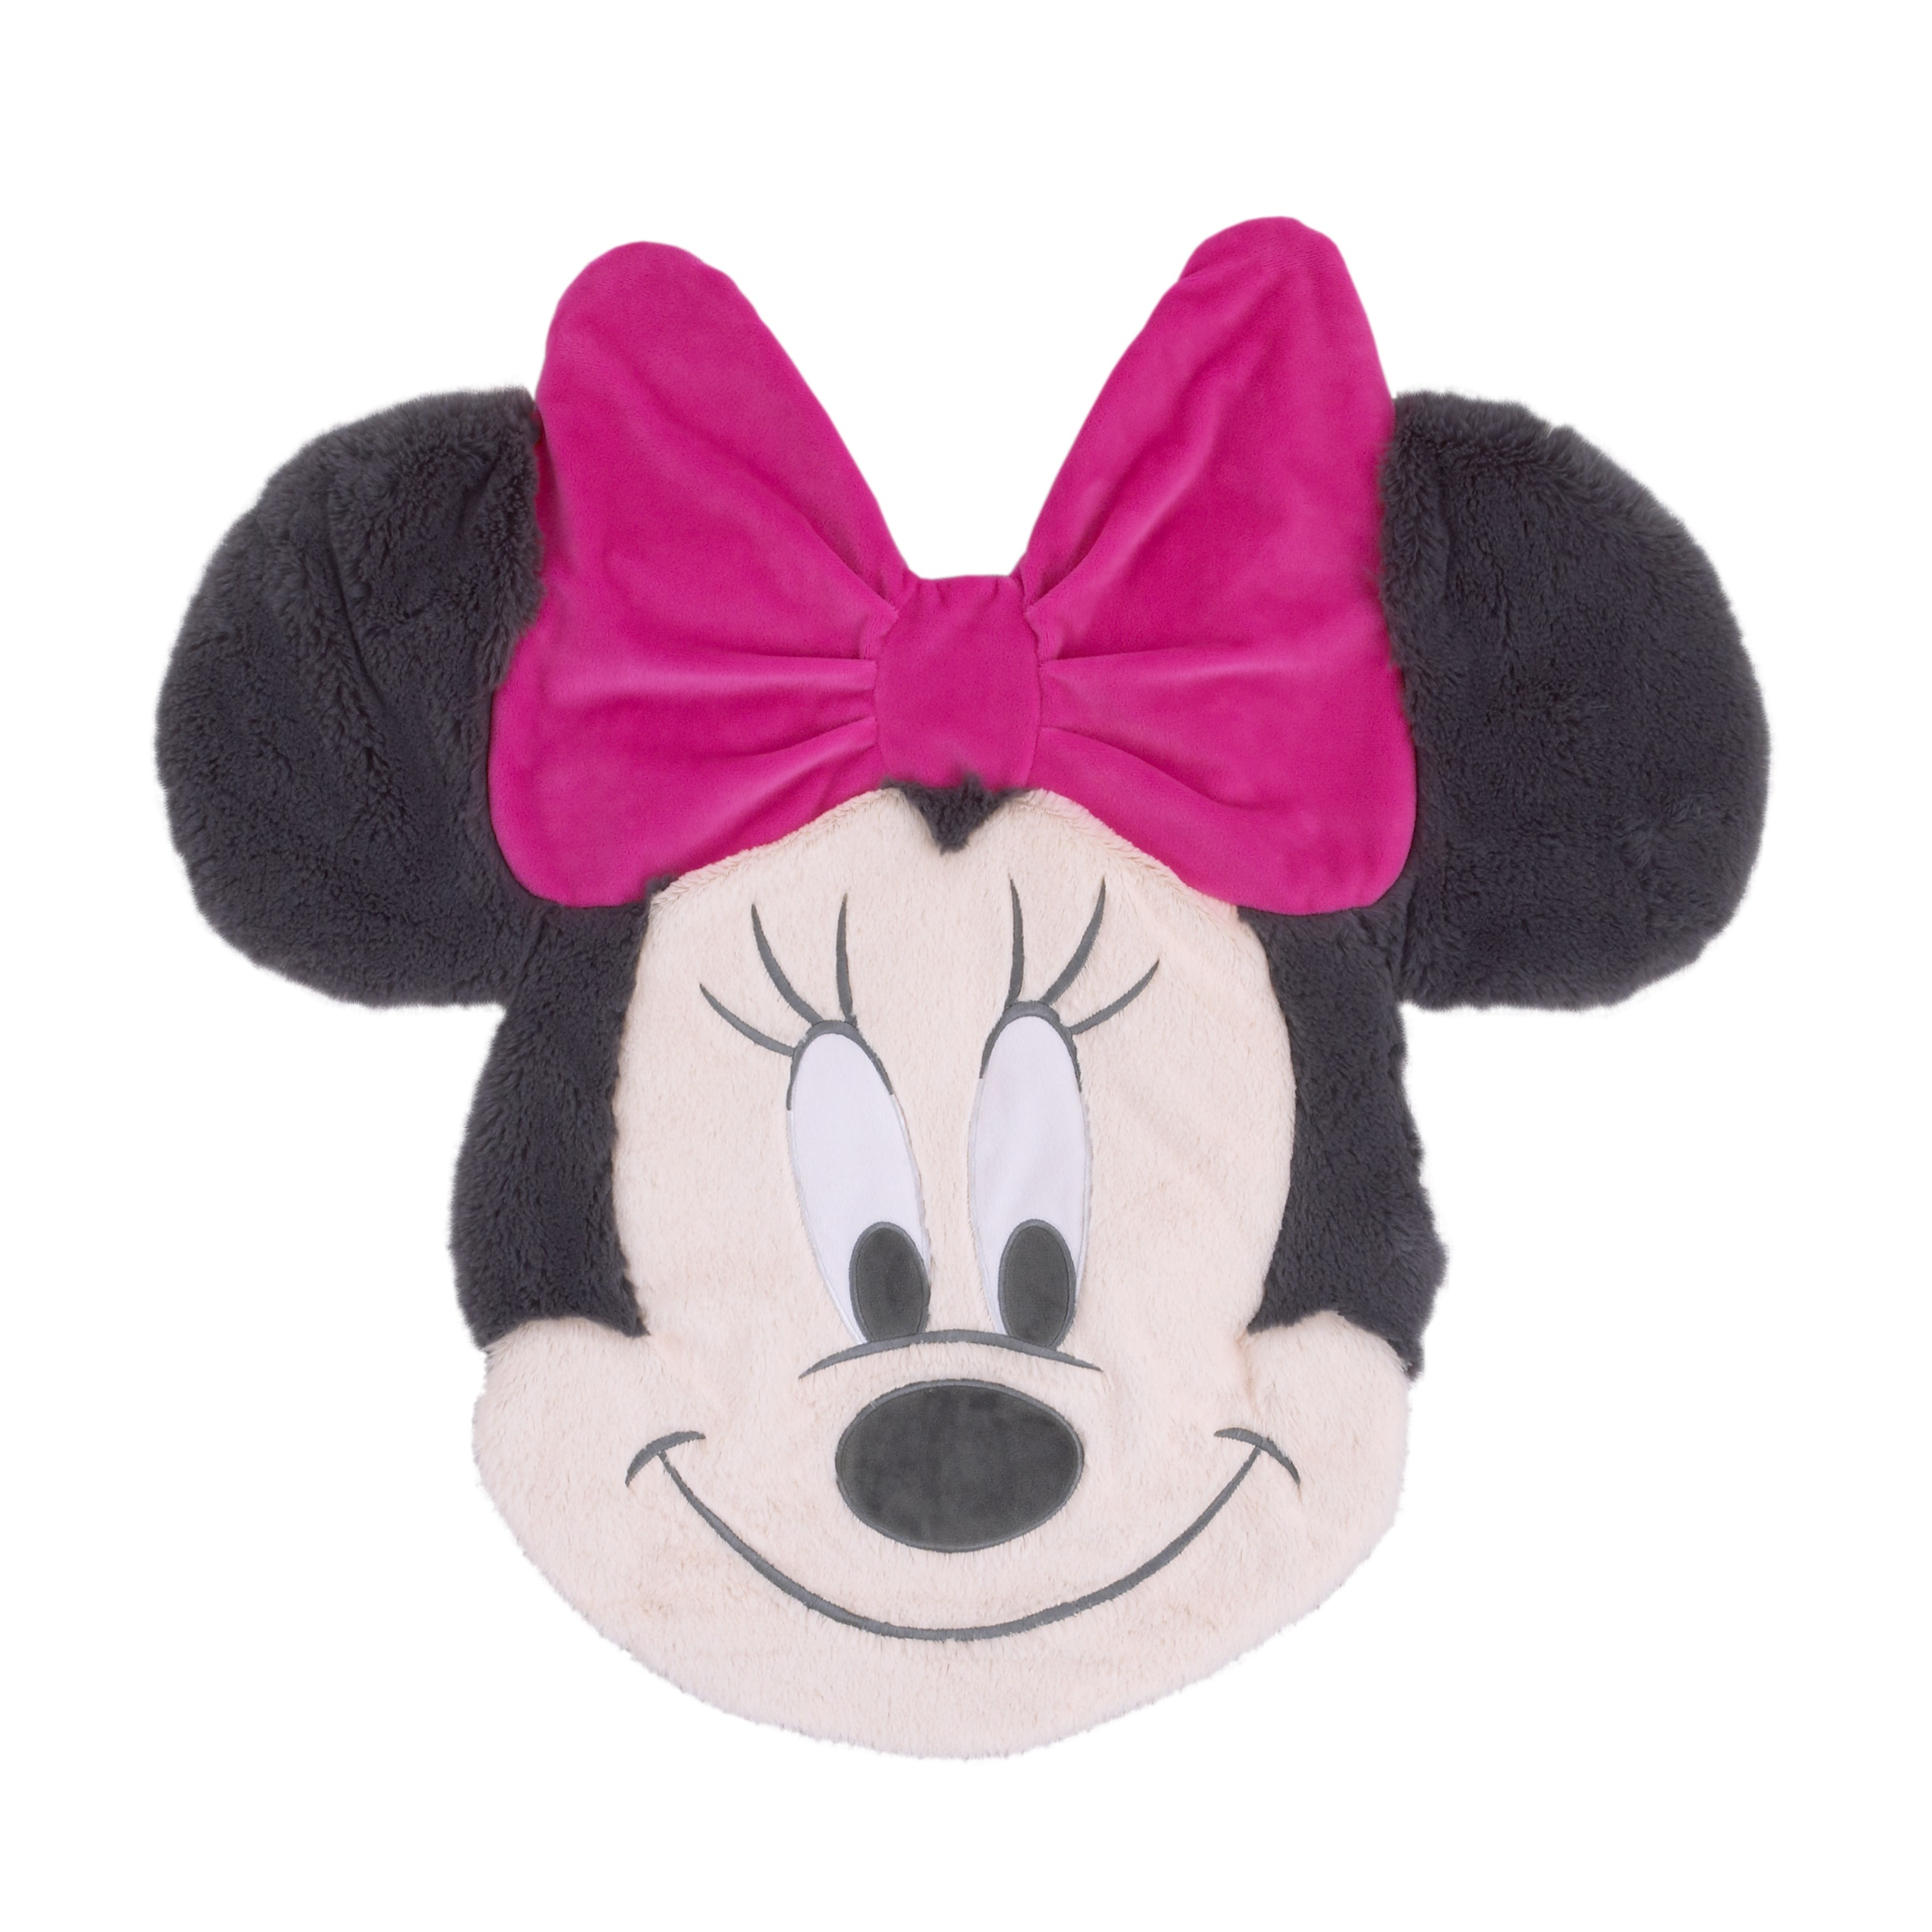 Disney Minnie Mouse - Tummy Time Plush Play Mat